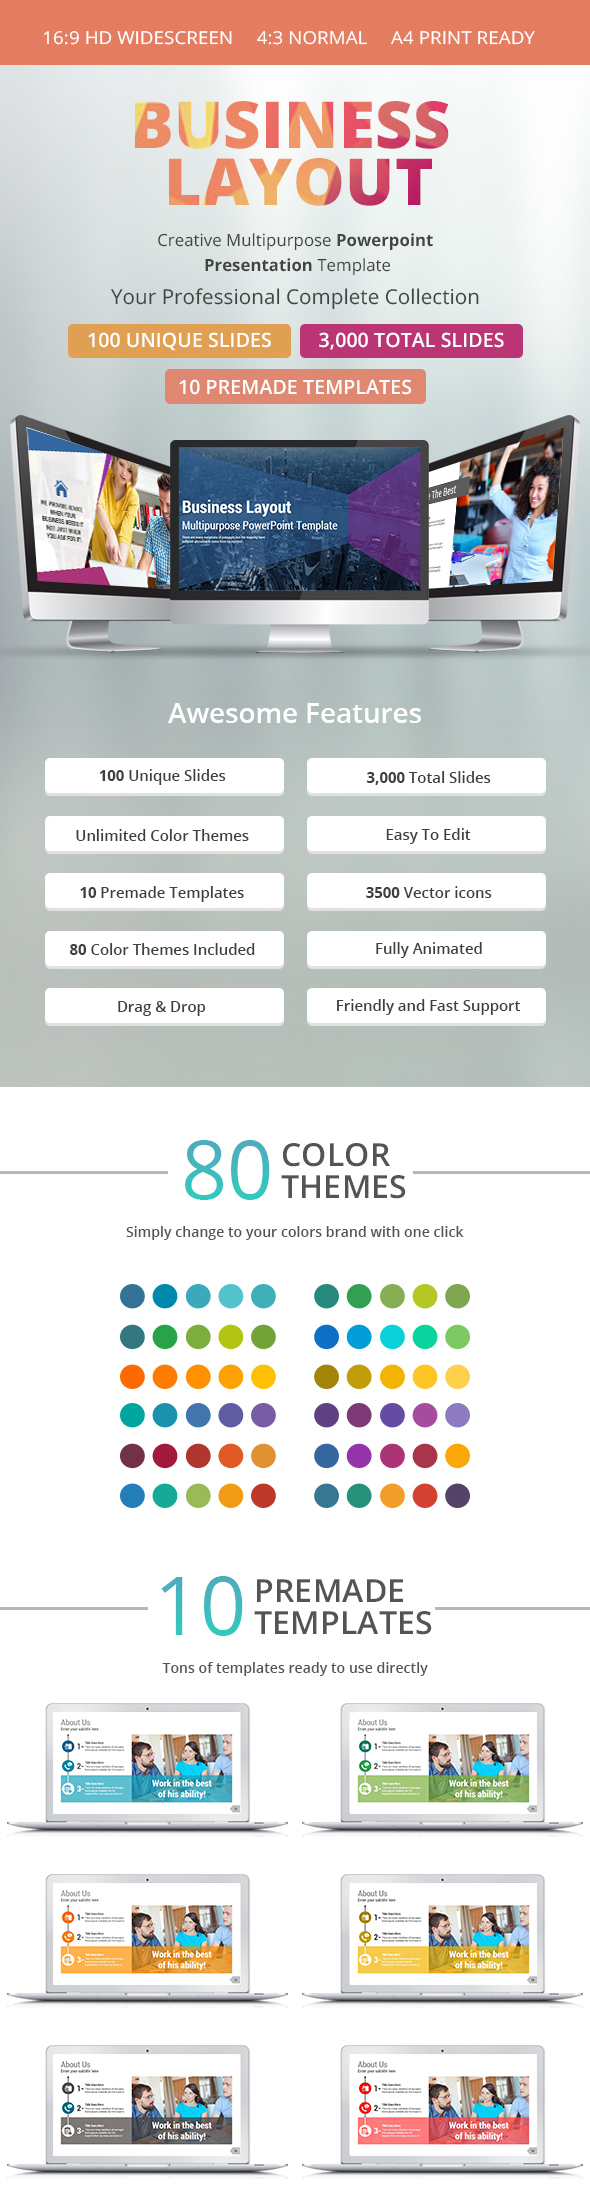 Business Layout PowerPoint Presentation Template